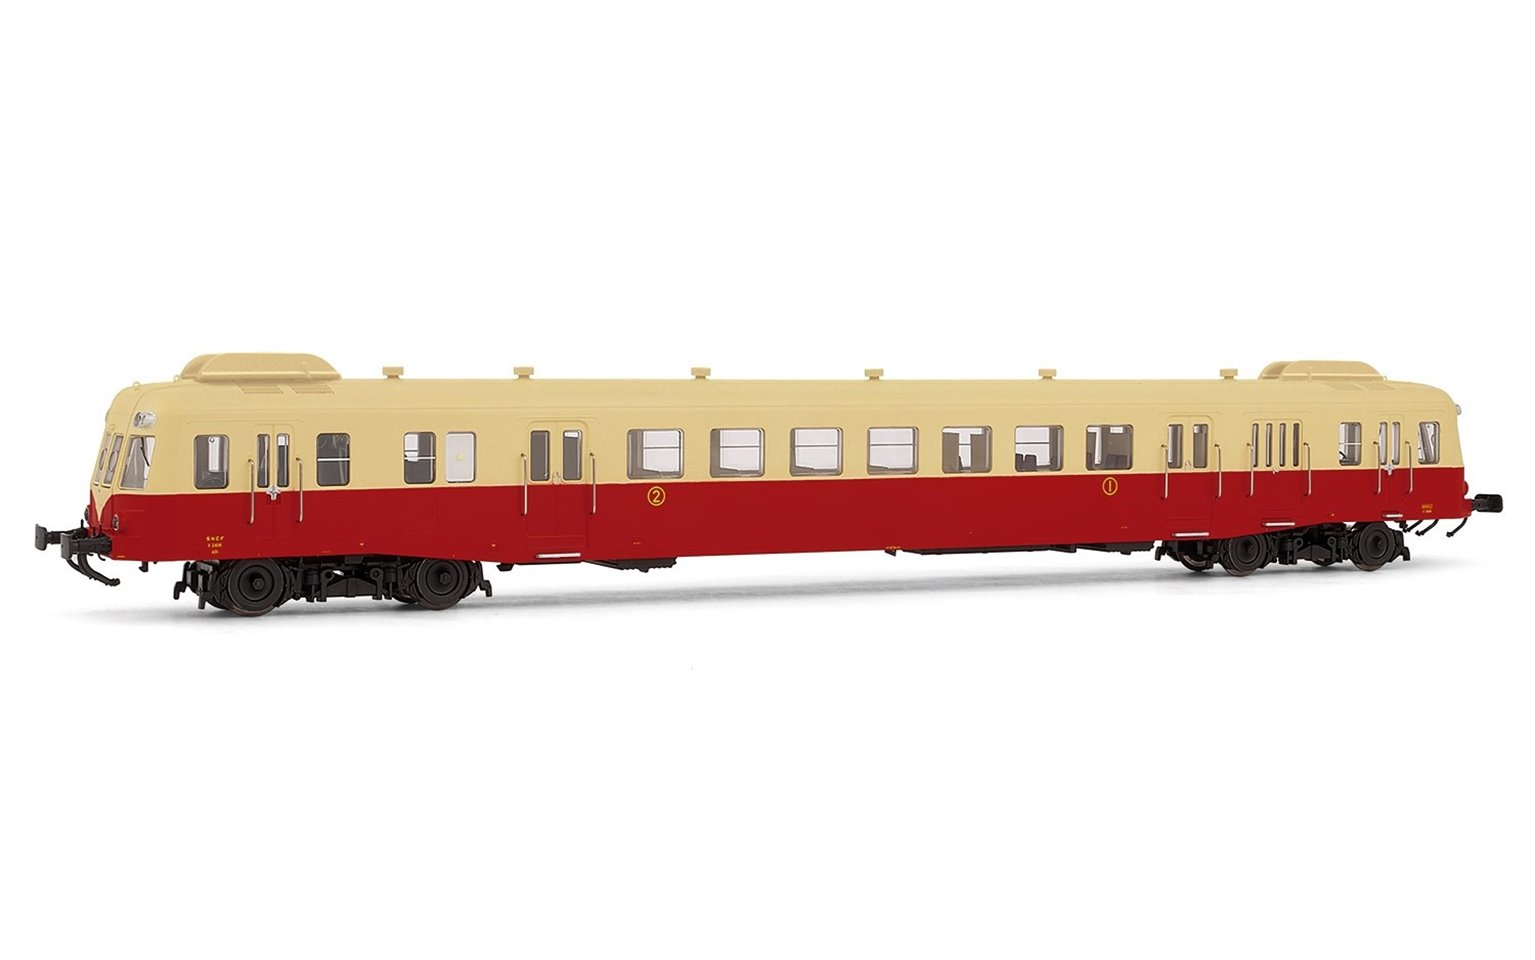 Jouef (H0 1:87) SNCF, diesel railcar class X 2400 with smoke deflectors in beige/red livery, X 2439, Depot Rouen-Orléans, period III